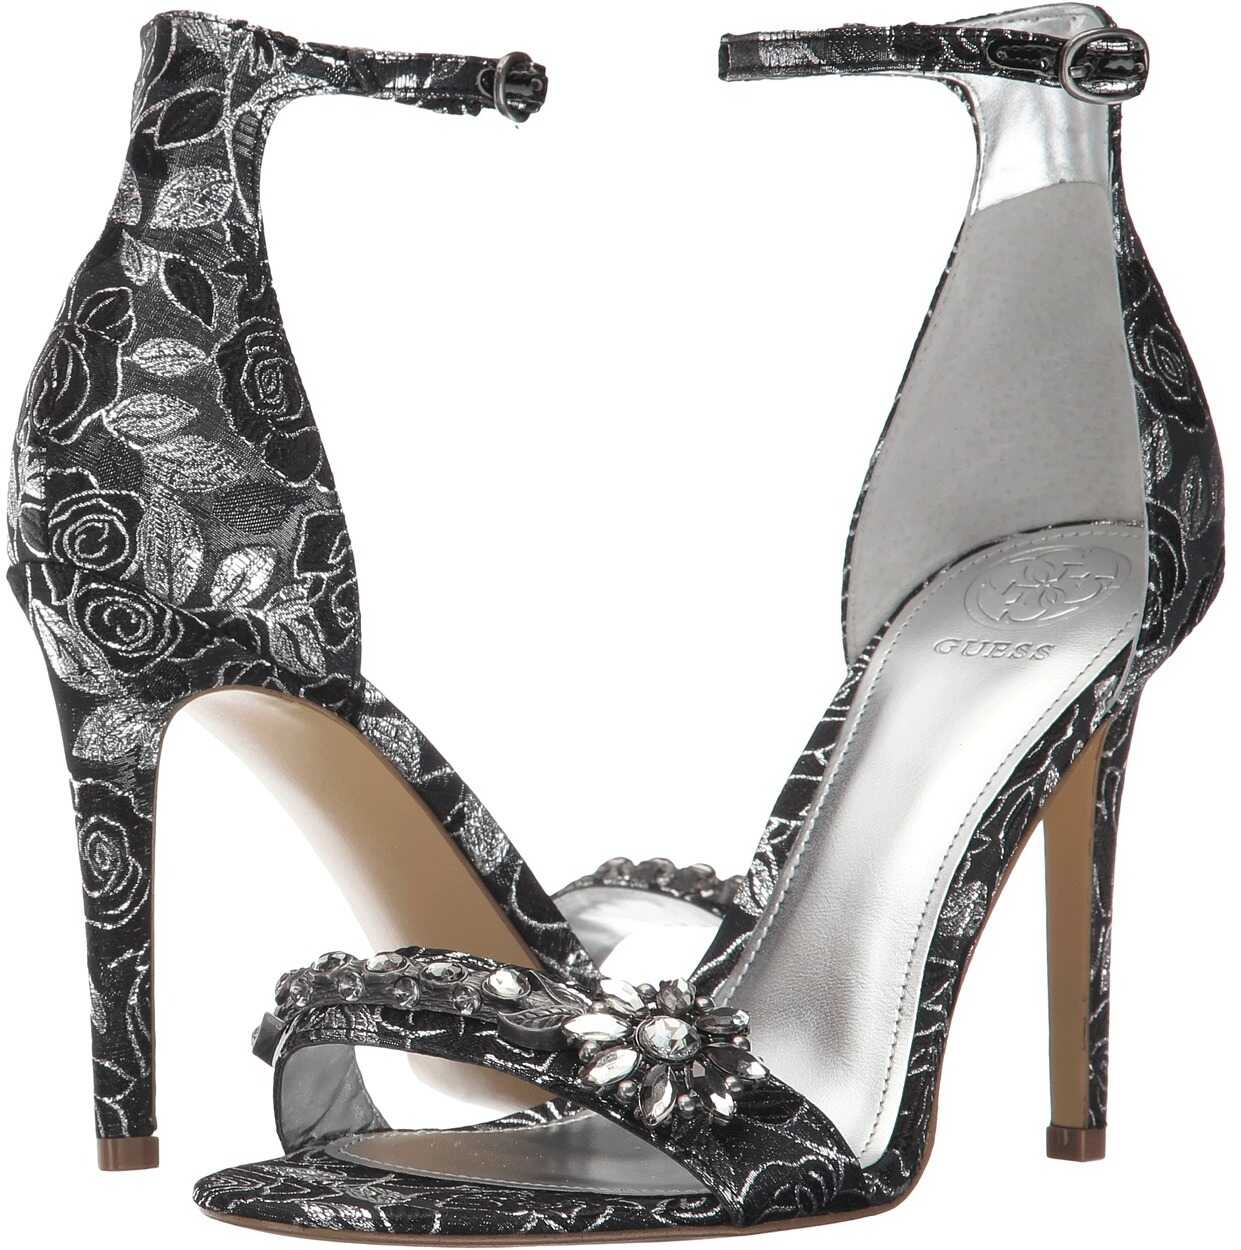 GUESS Partyer Silver/Black Fabric